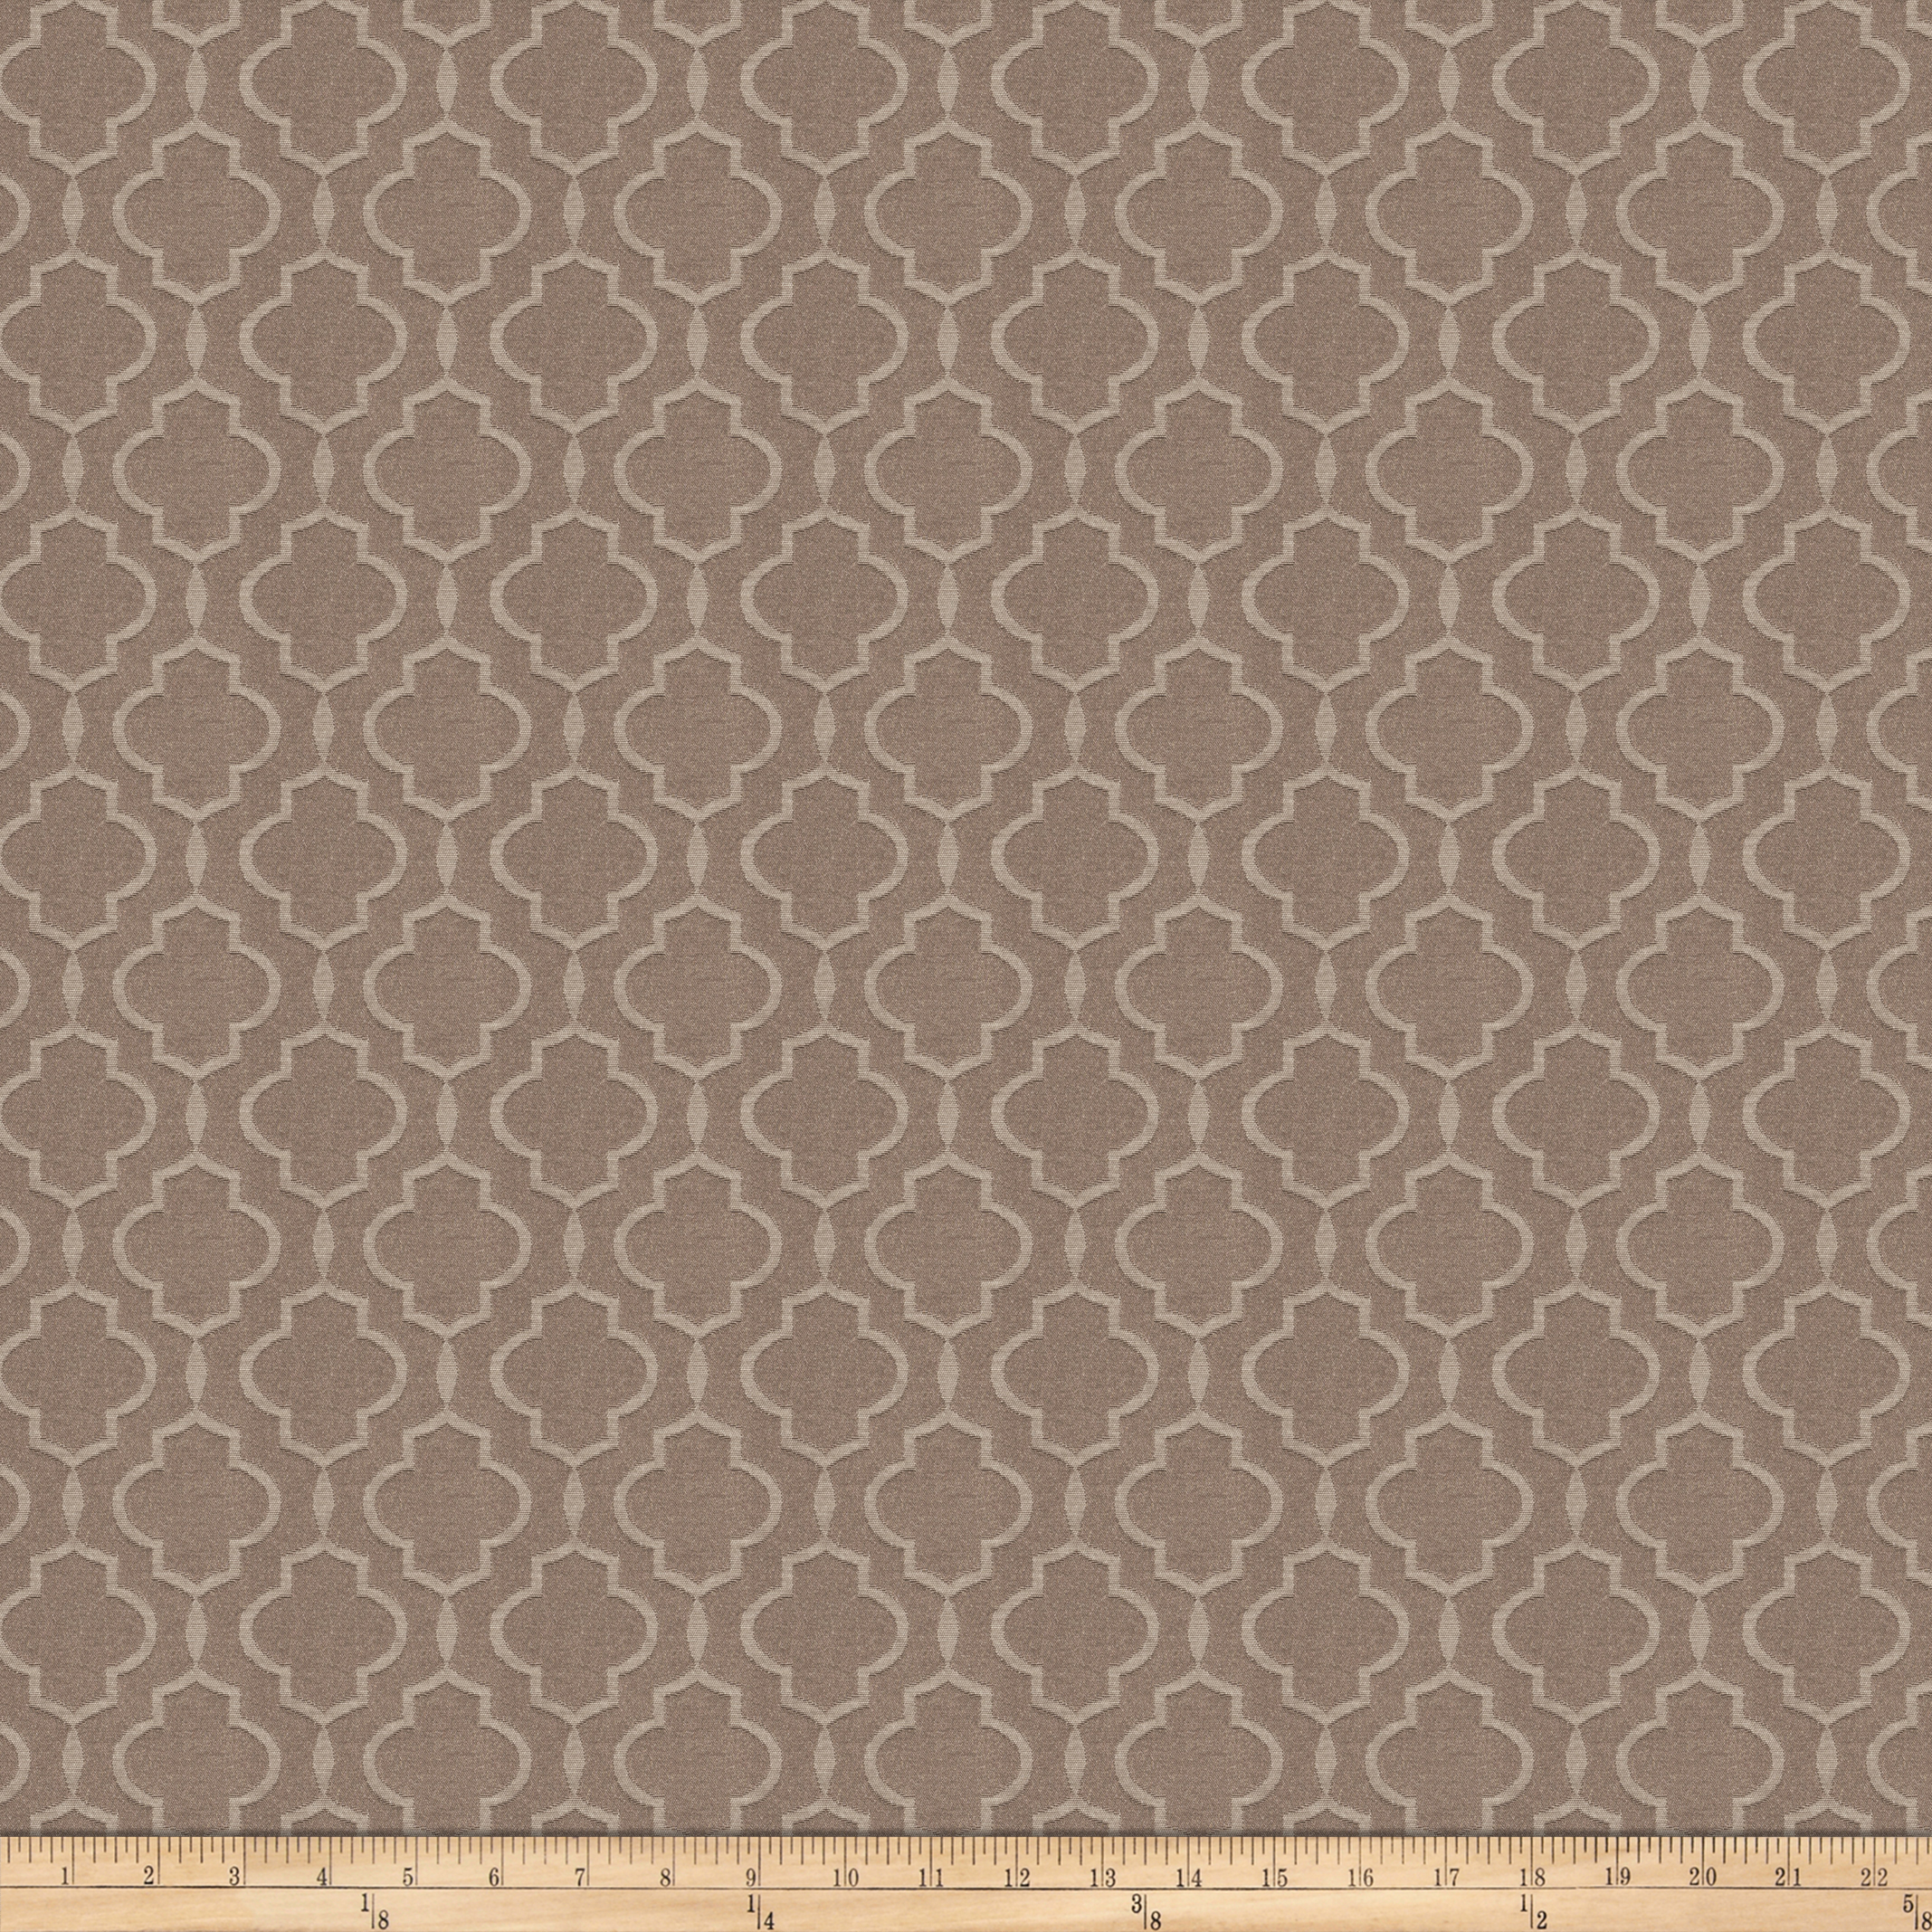 Image of Trend 03487 Satin Jacquard Steel Fabric